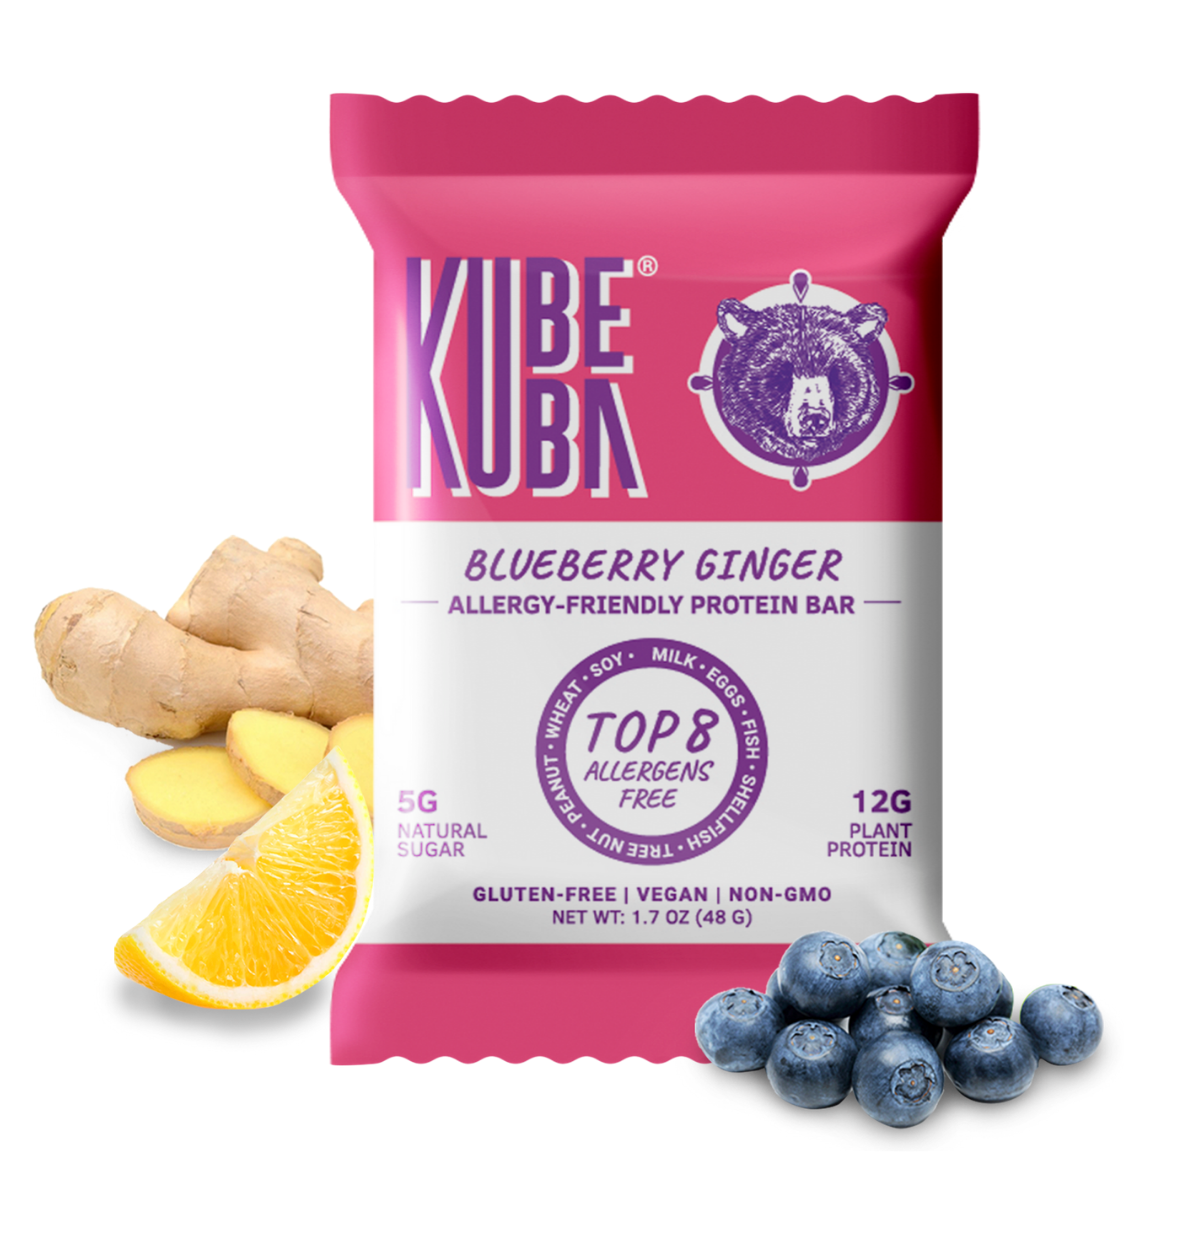 blueberry ginger allergy friendly protein bar